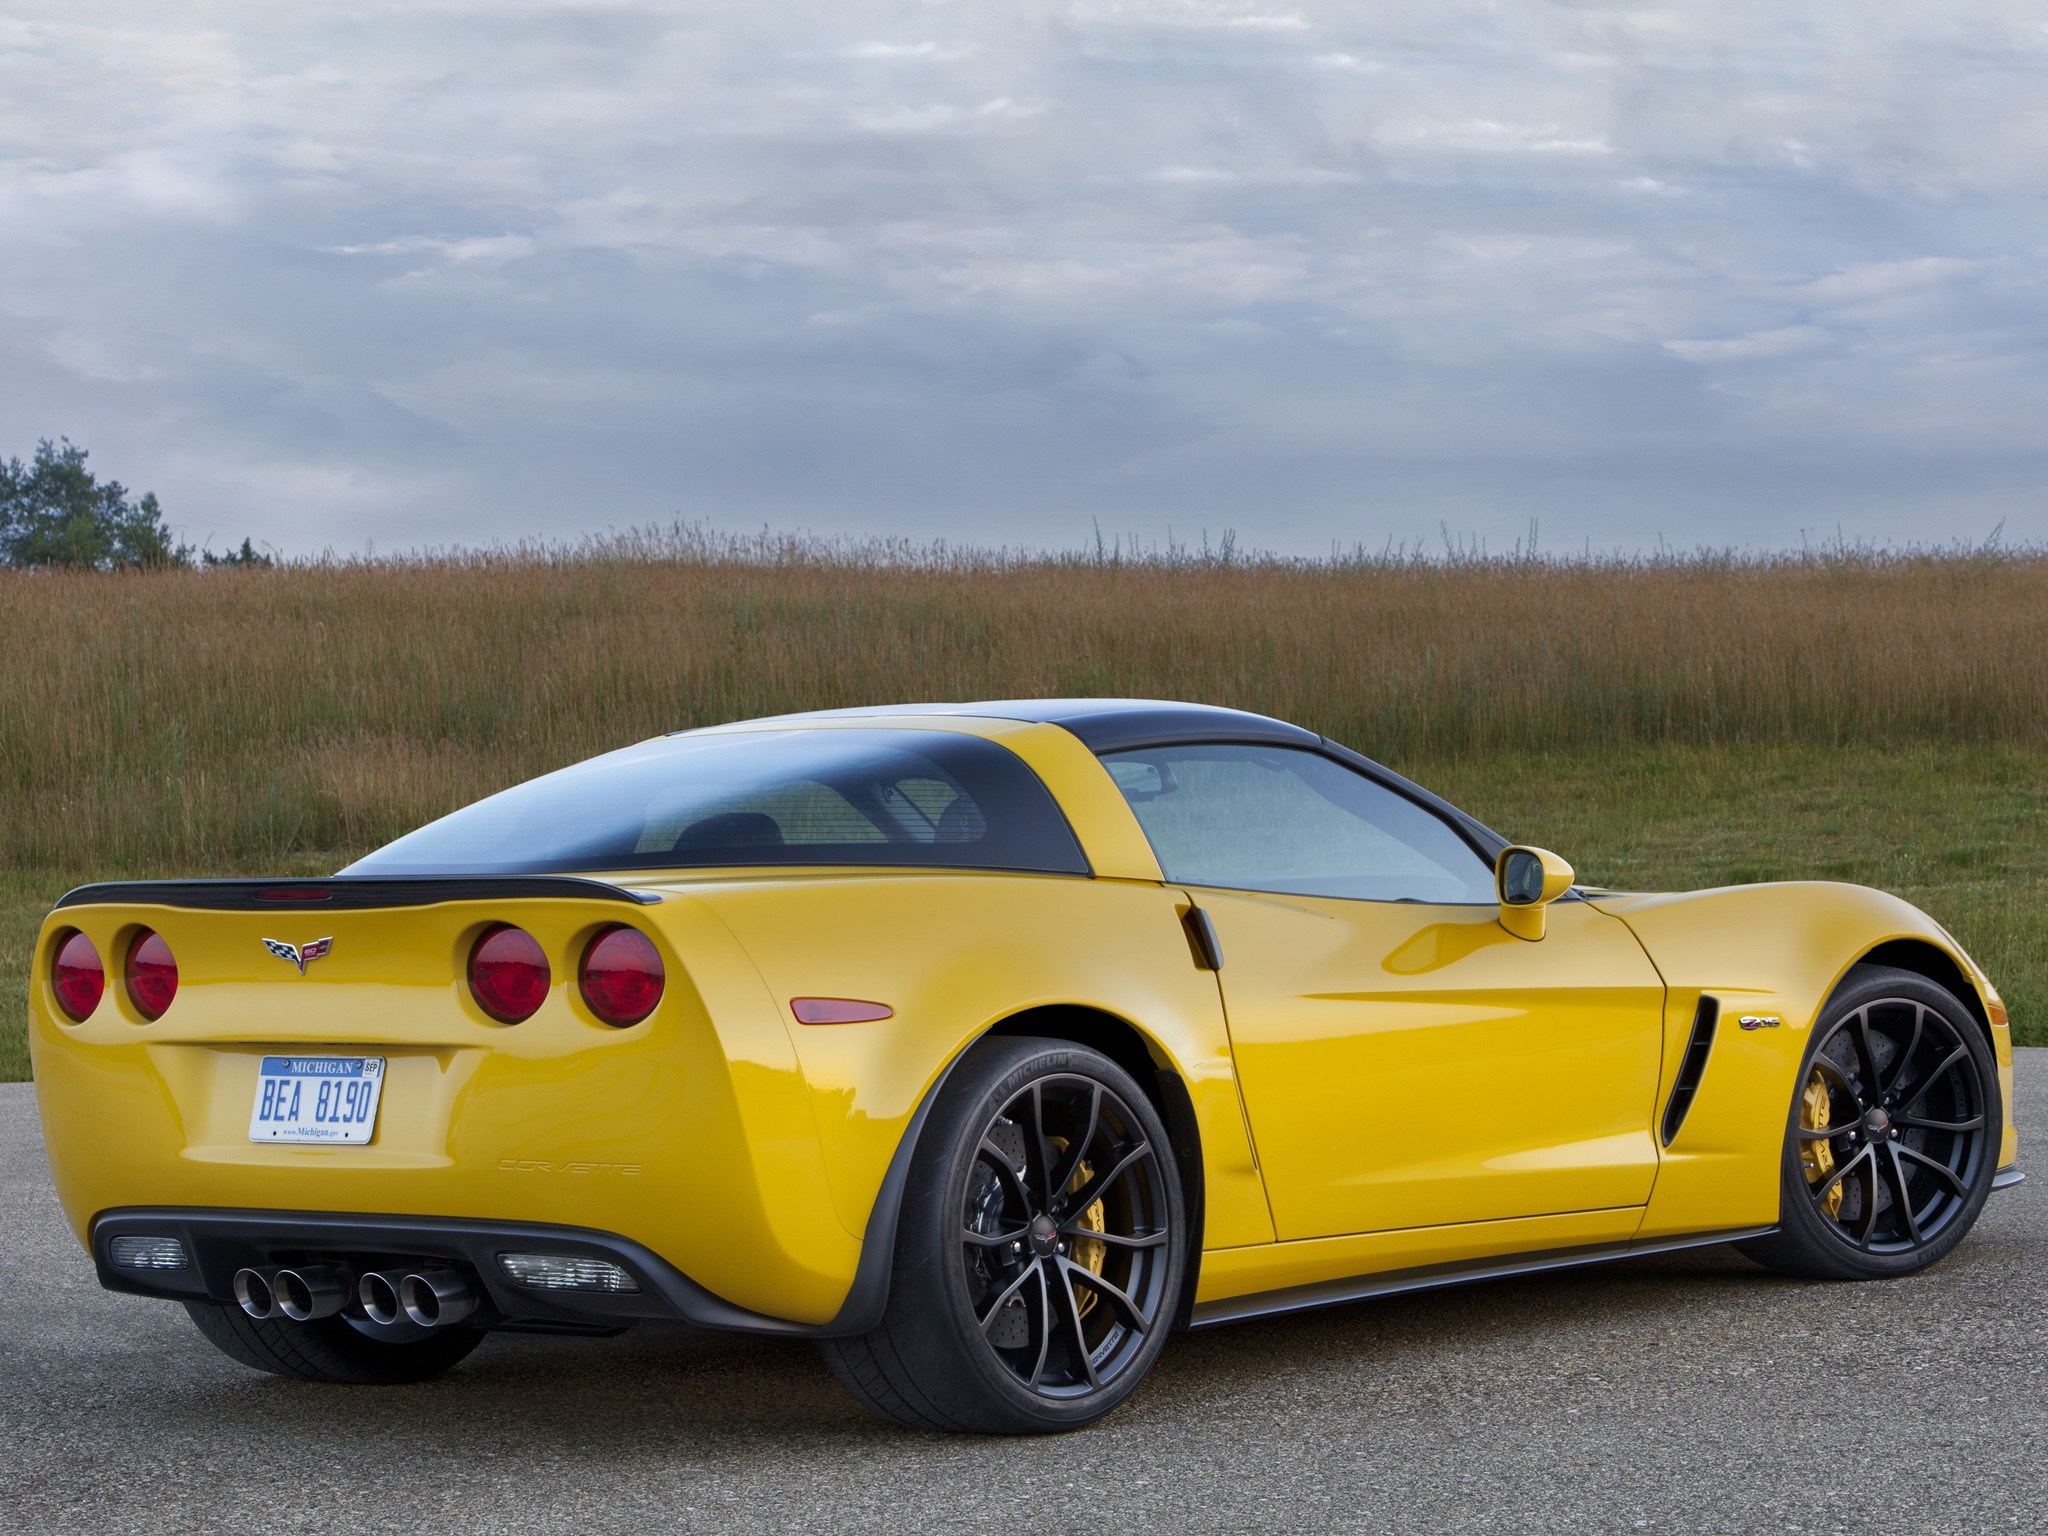 Chevy Sports Cars Names